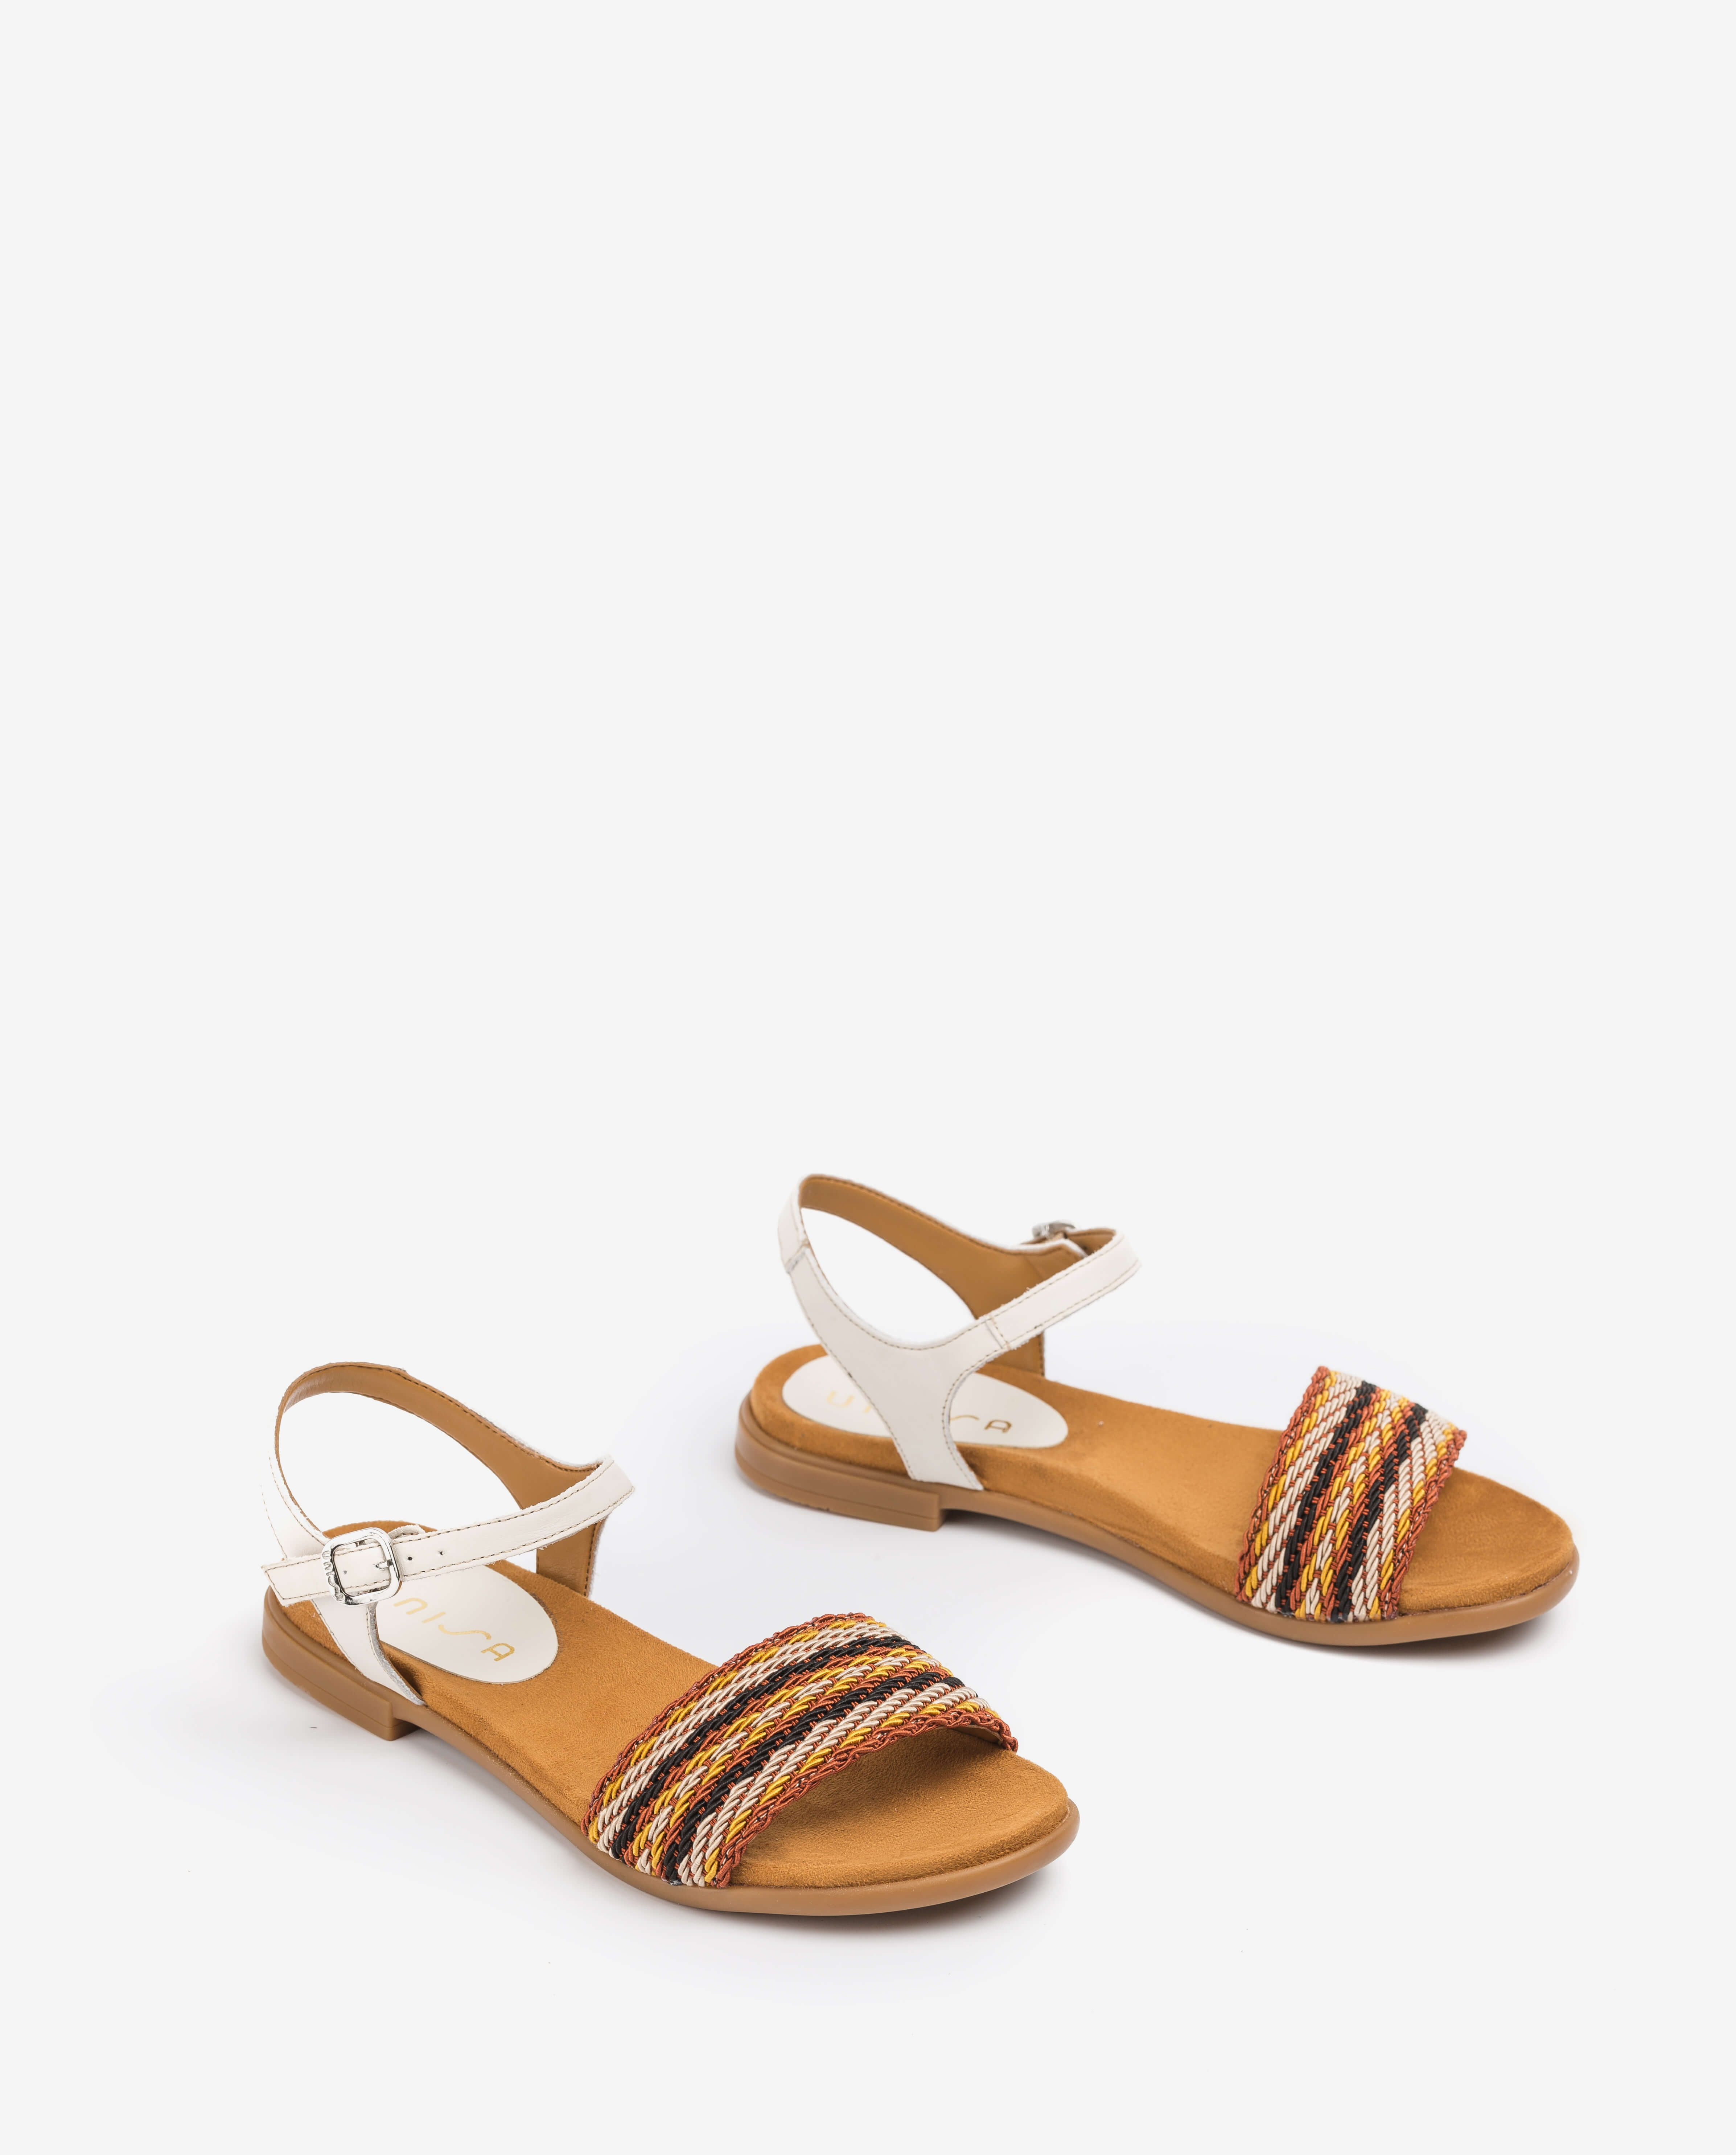 UNISA Sandale fille mule tressagee LINTA_NF_CAN ivory 3